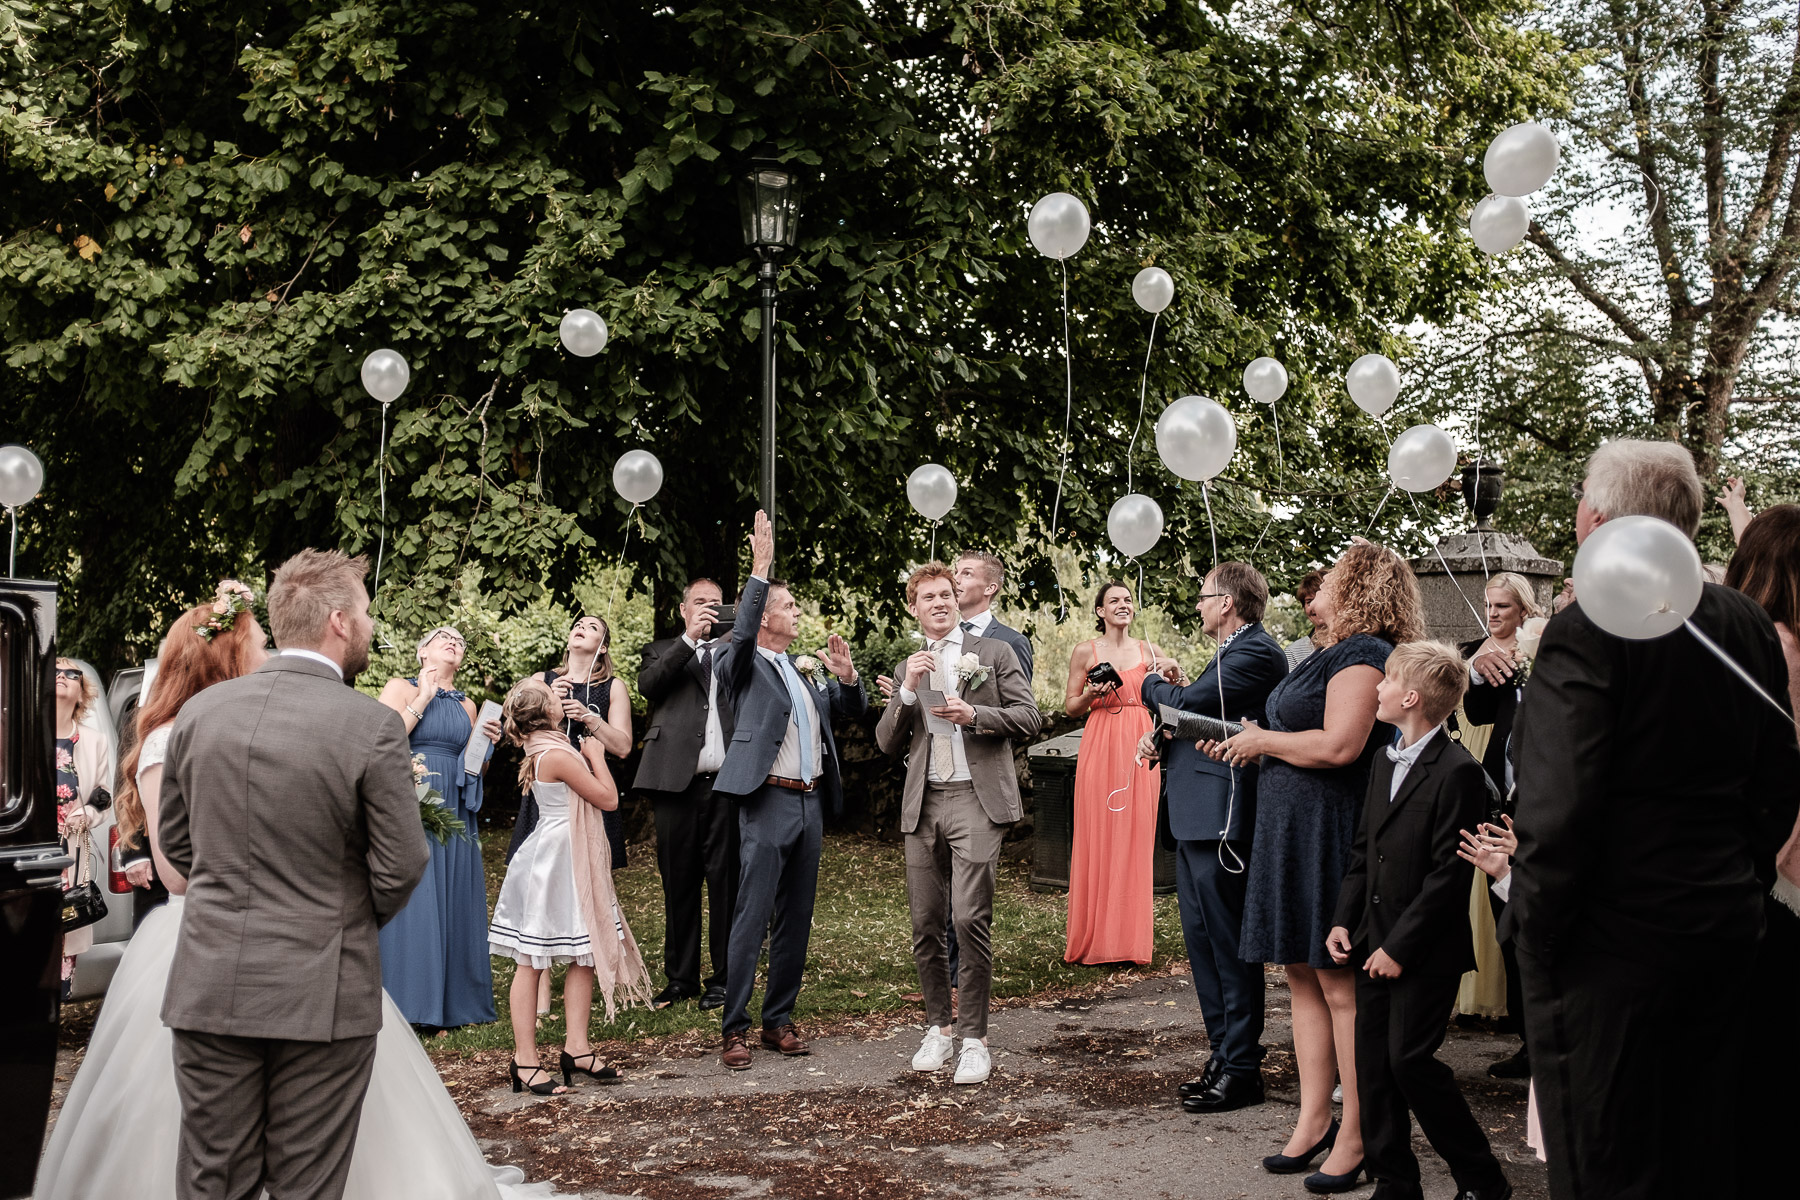 Click to enlarge image elise-christoffer-eidsvoll-ottossonphoto-1015.jpg